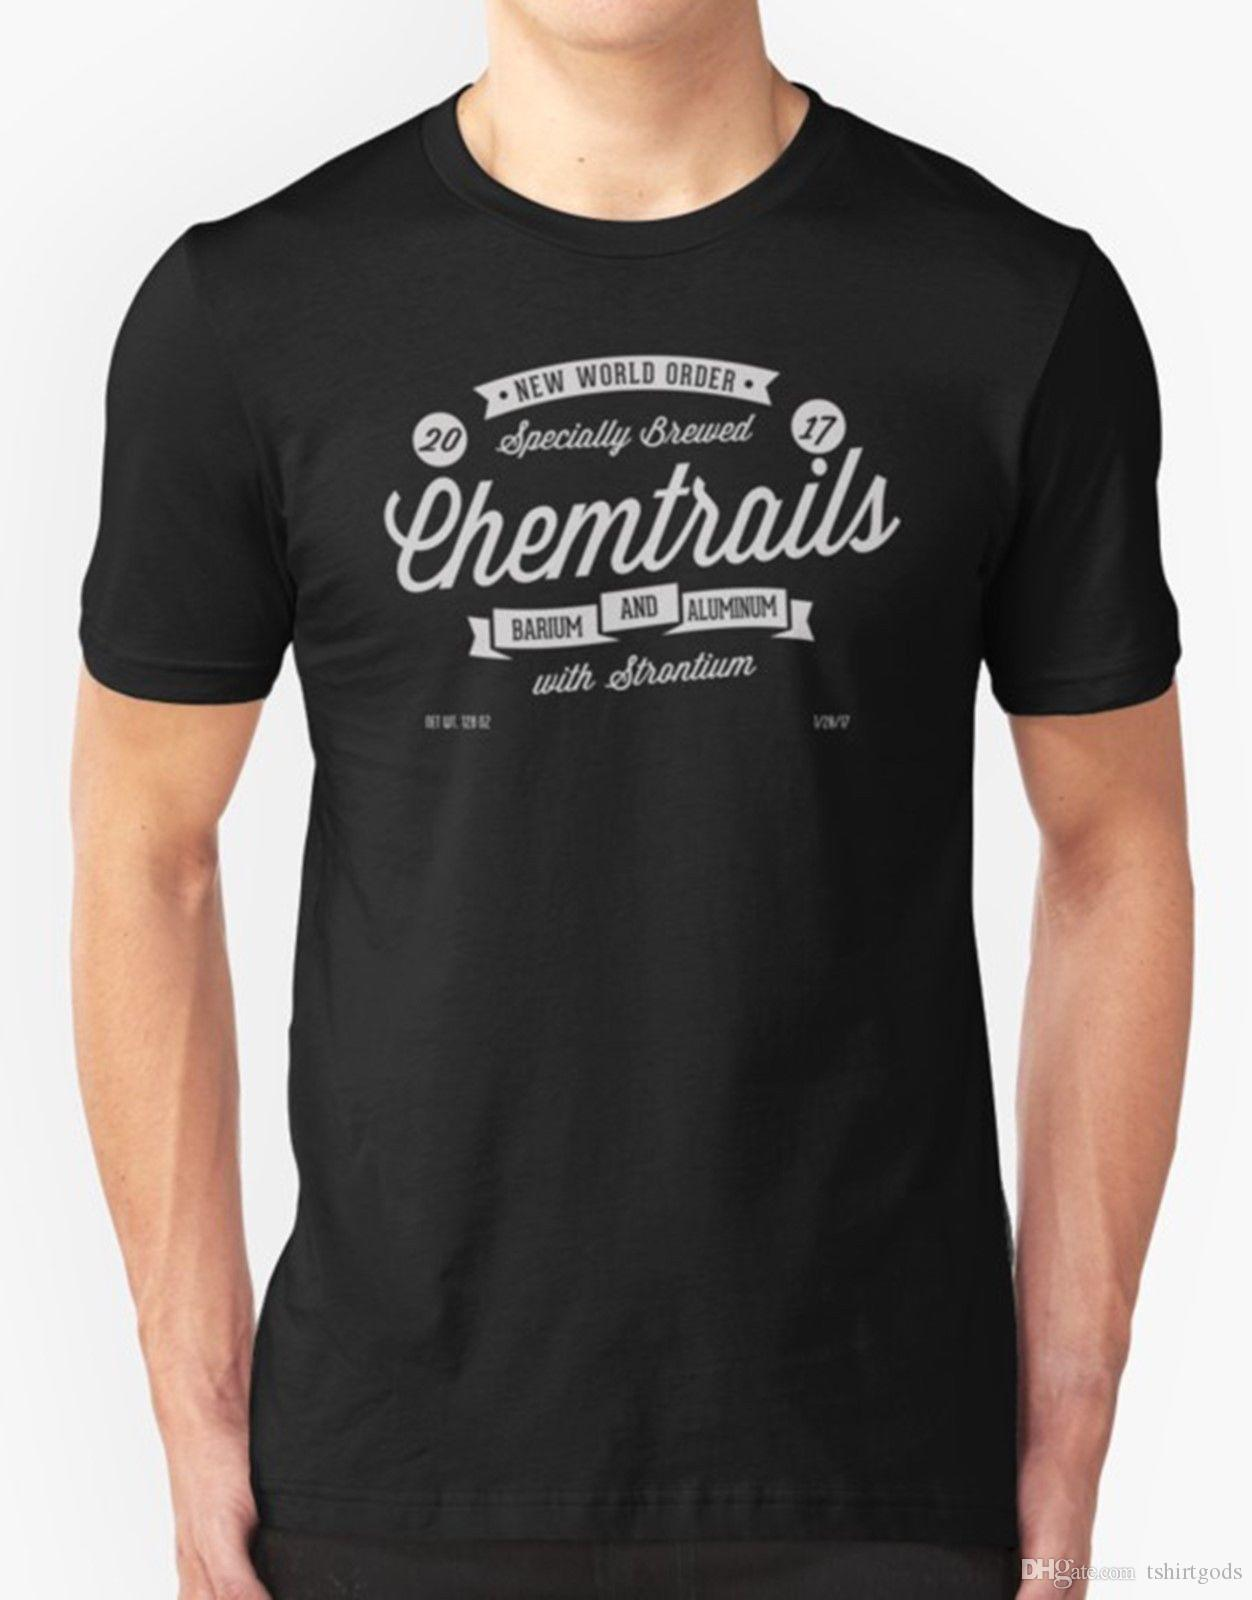 chemtrails t shirt conspiracy theory new world order online shopping